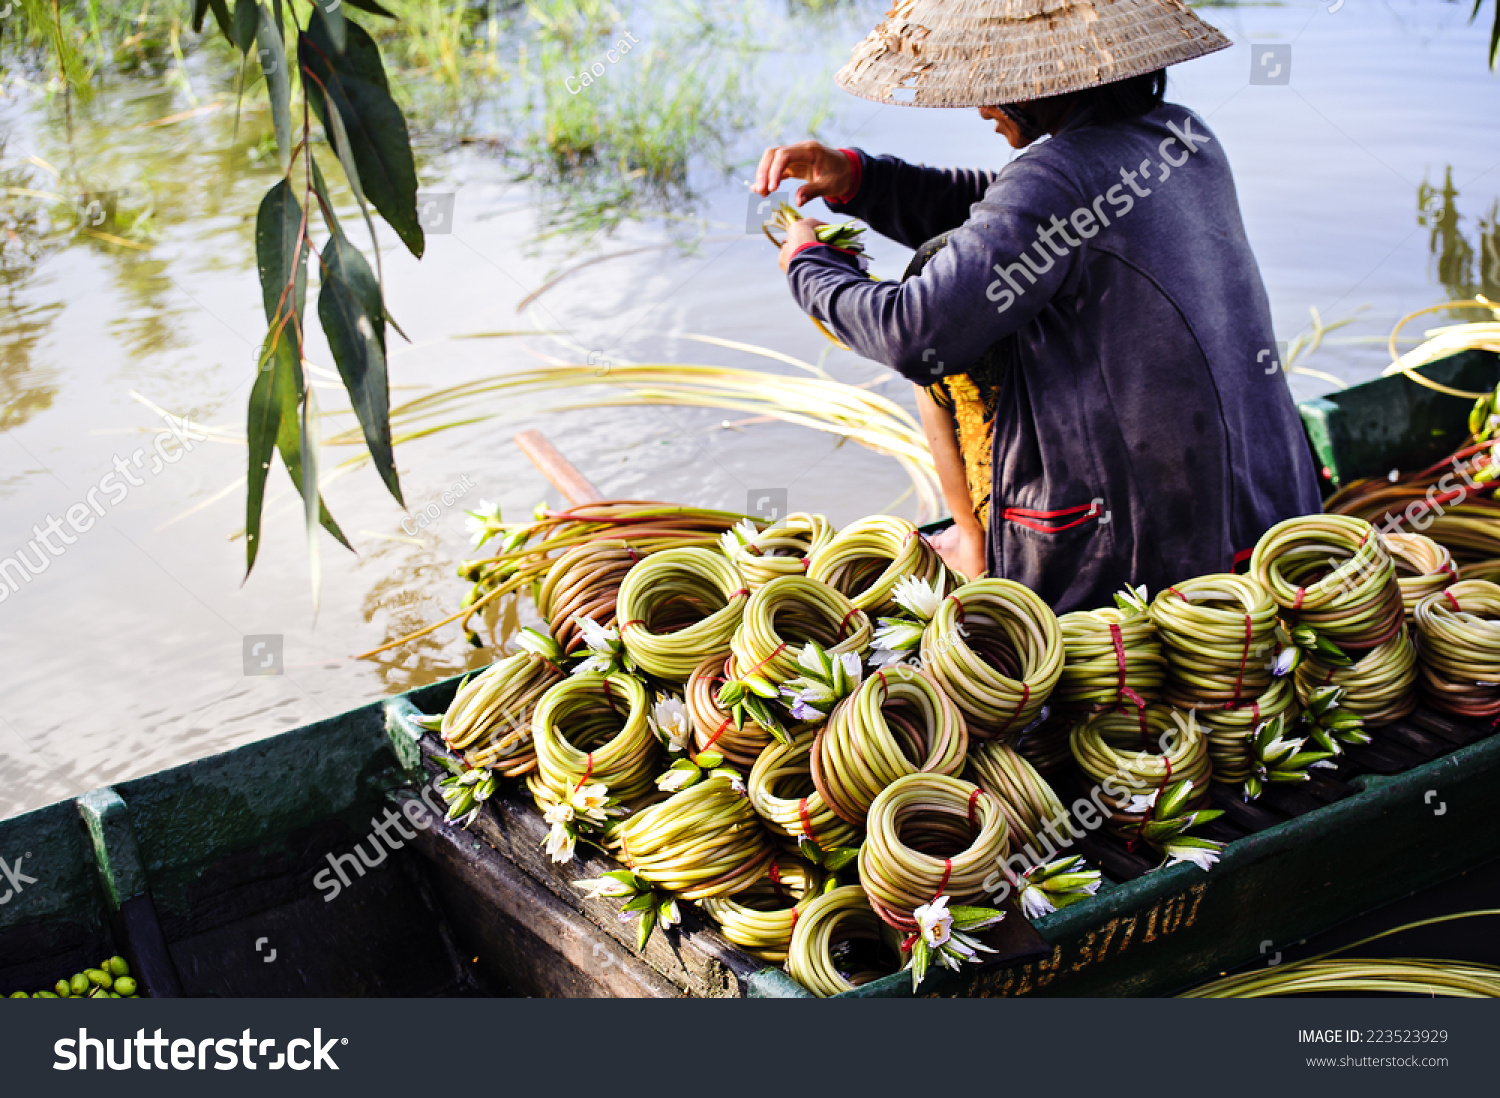 Water lily flowers nymphaea prepared roll stock photo 100 legal water lily flowers nymphaea prepared in roll for sale this is used vegetables izmirmasajfo